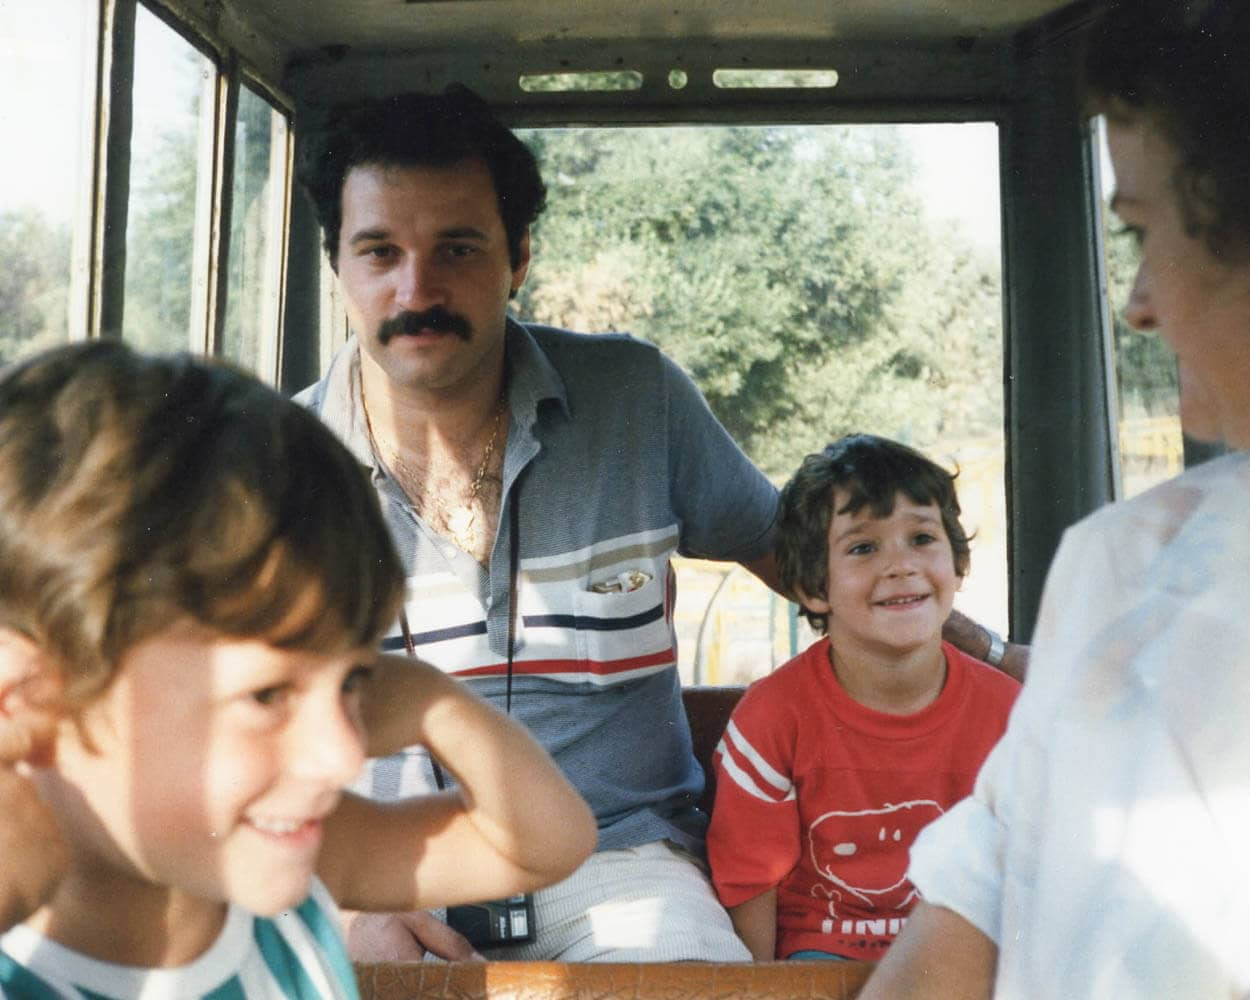 Maurizio as a child with dad, brother and mom